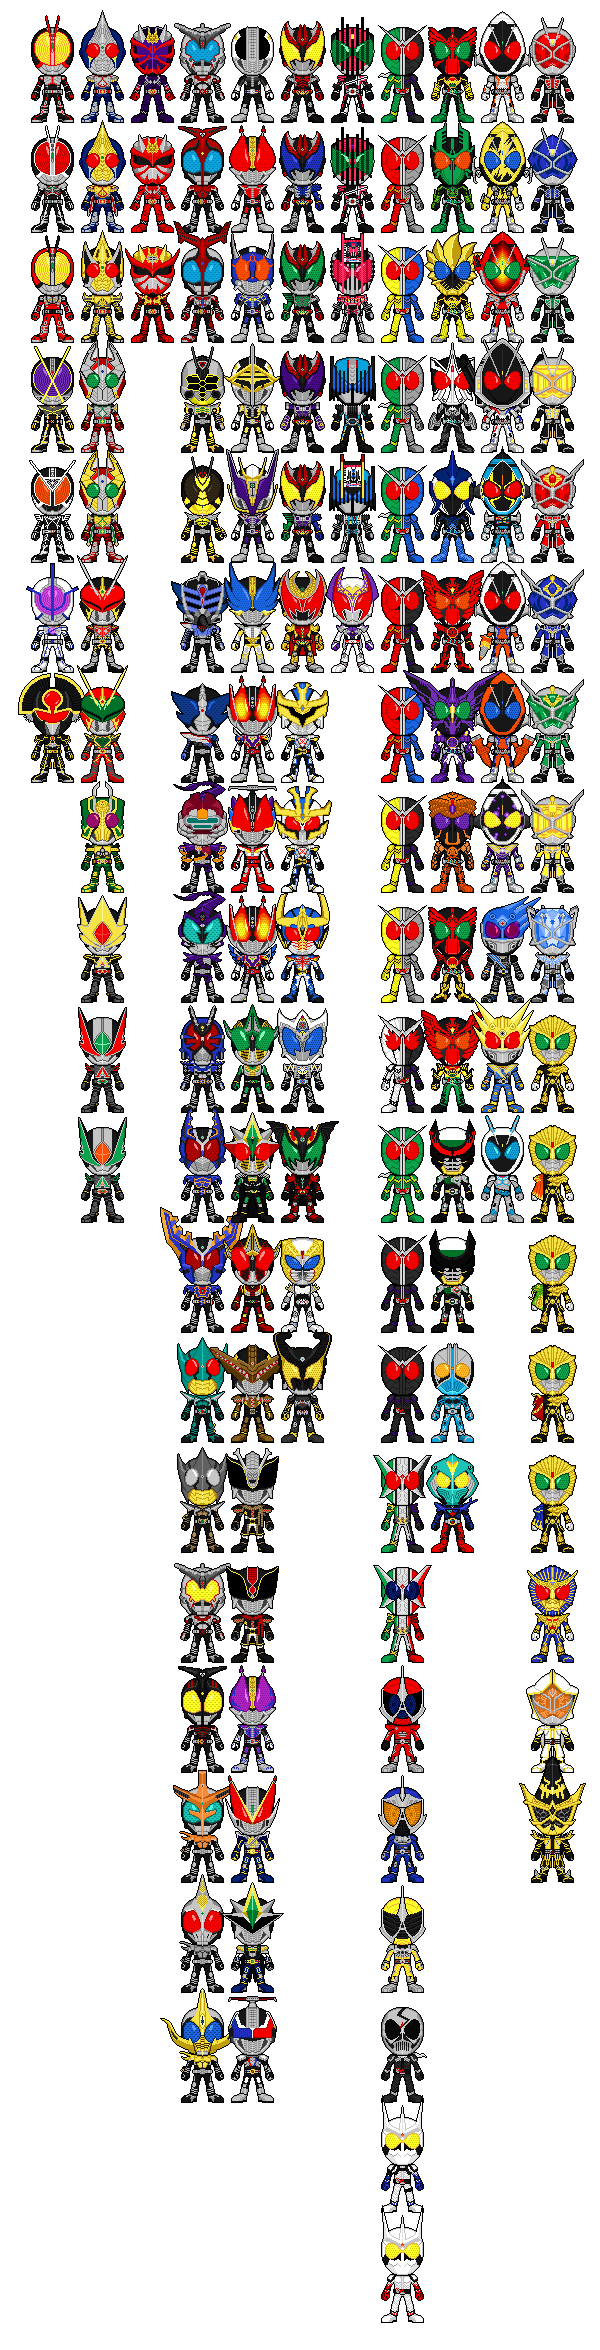 All Kamen Riders Pixel Art (WIP) by Miralupa